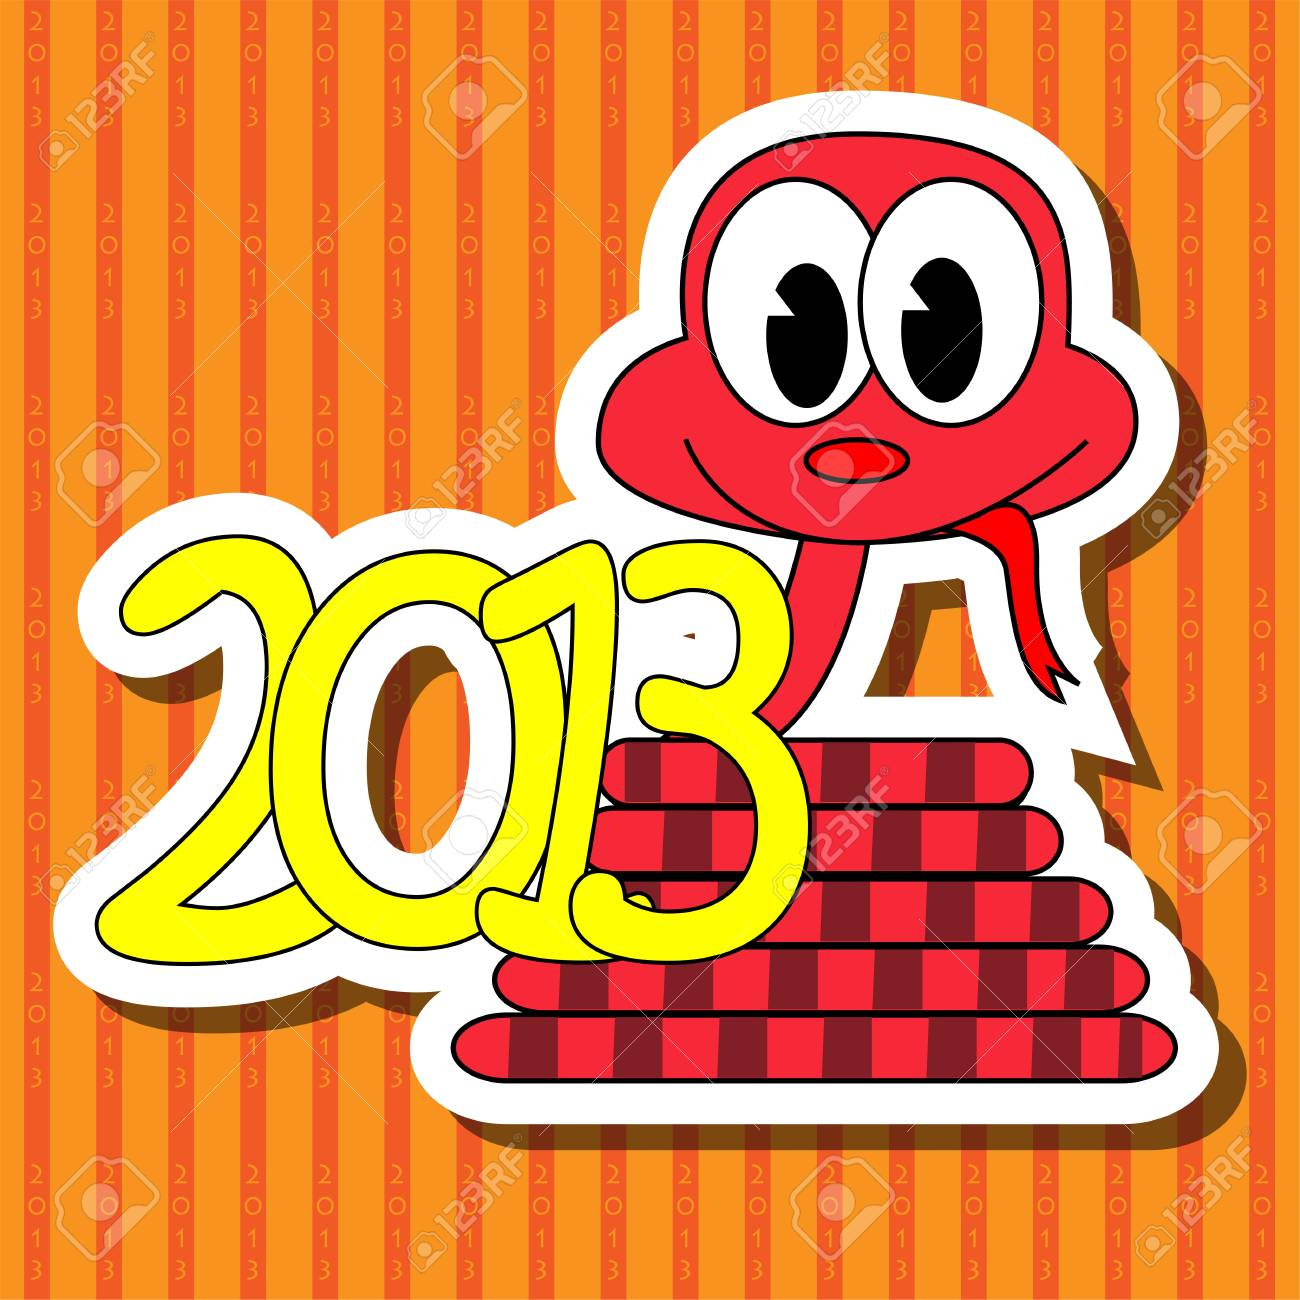 2013 year of the snake with red background Stock Vector - 14700694